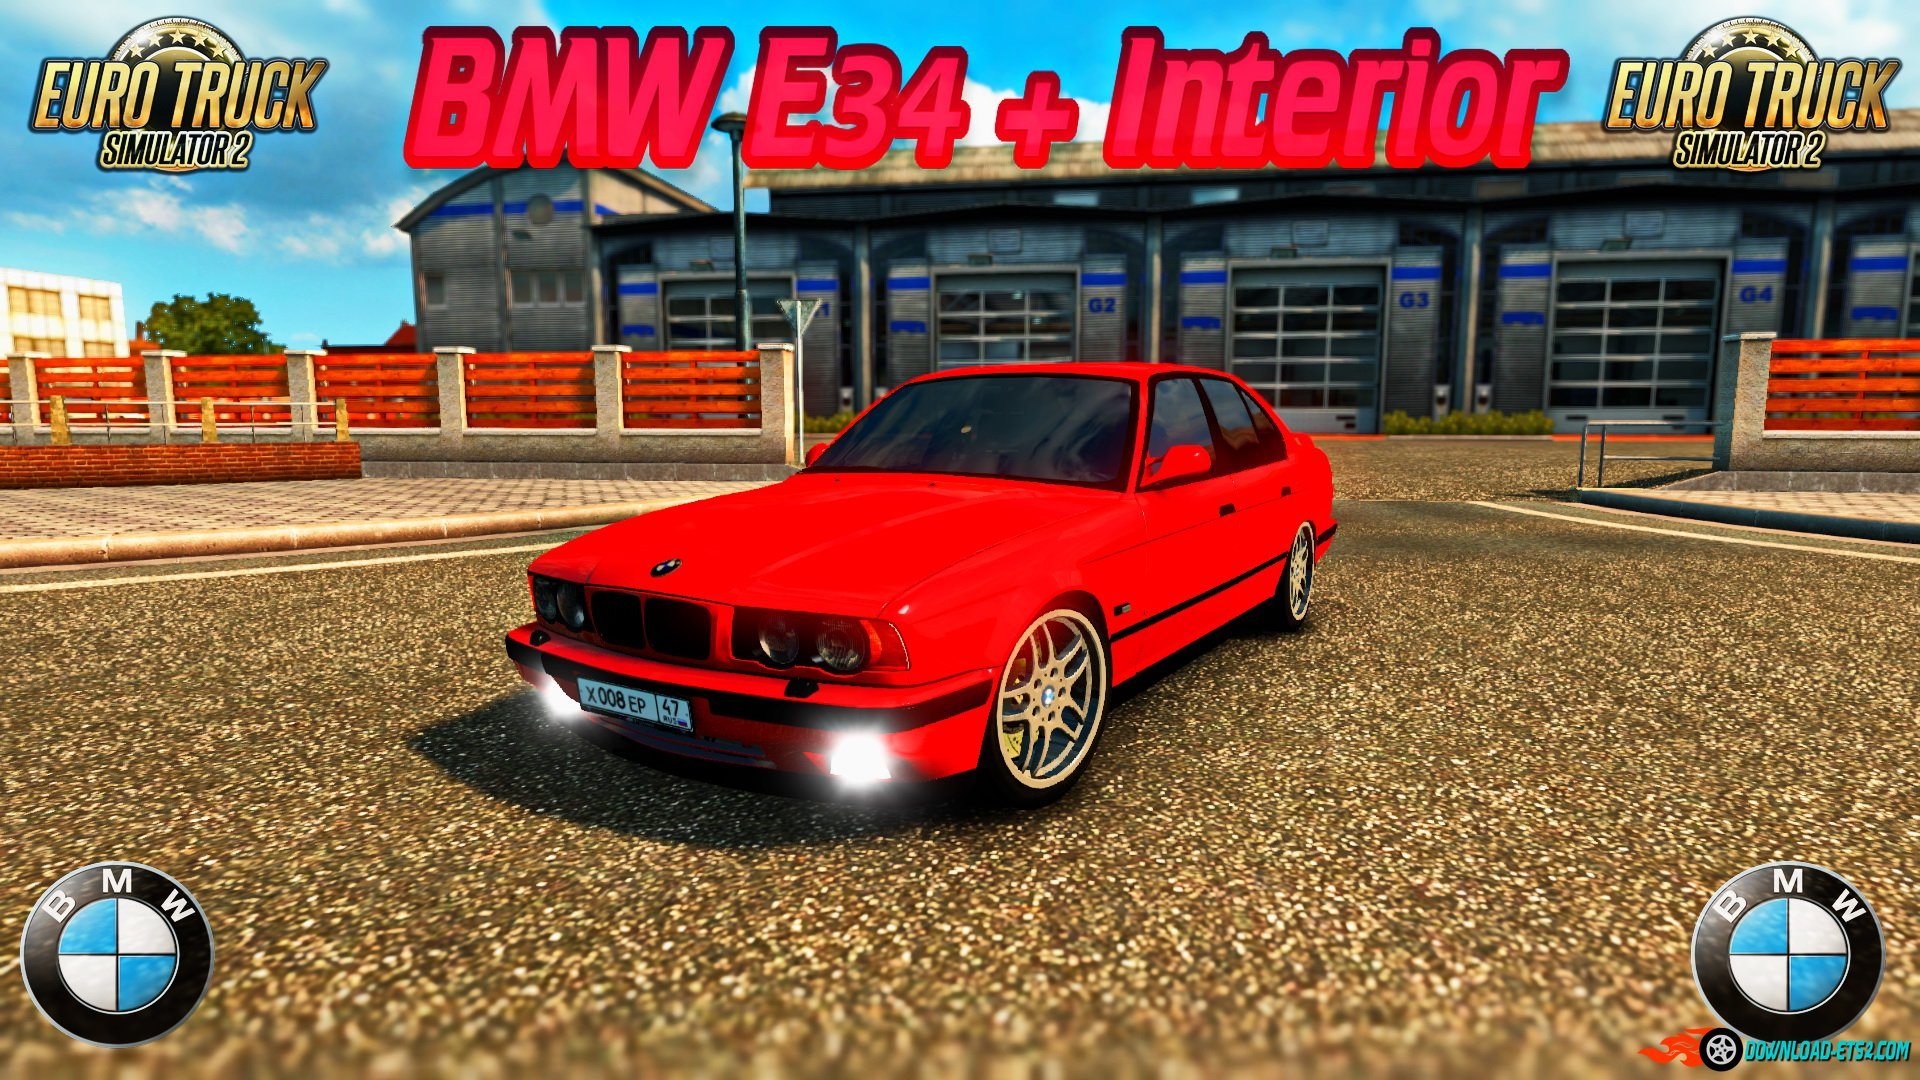 BMW E34 + Interior v1.0 by Vinzel